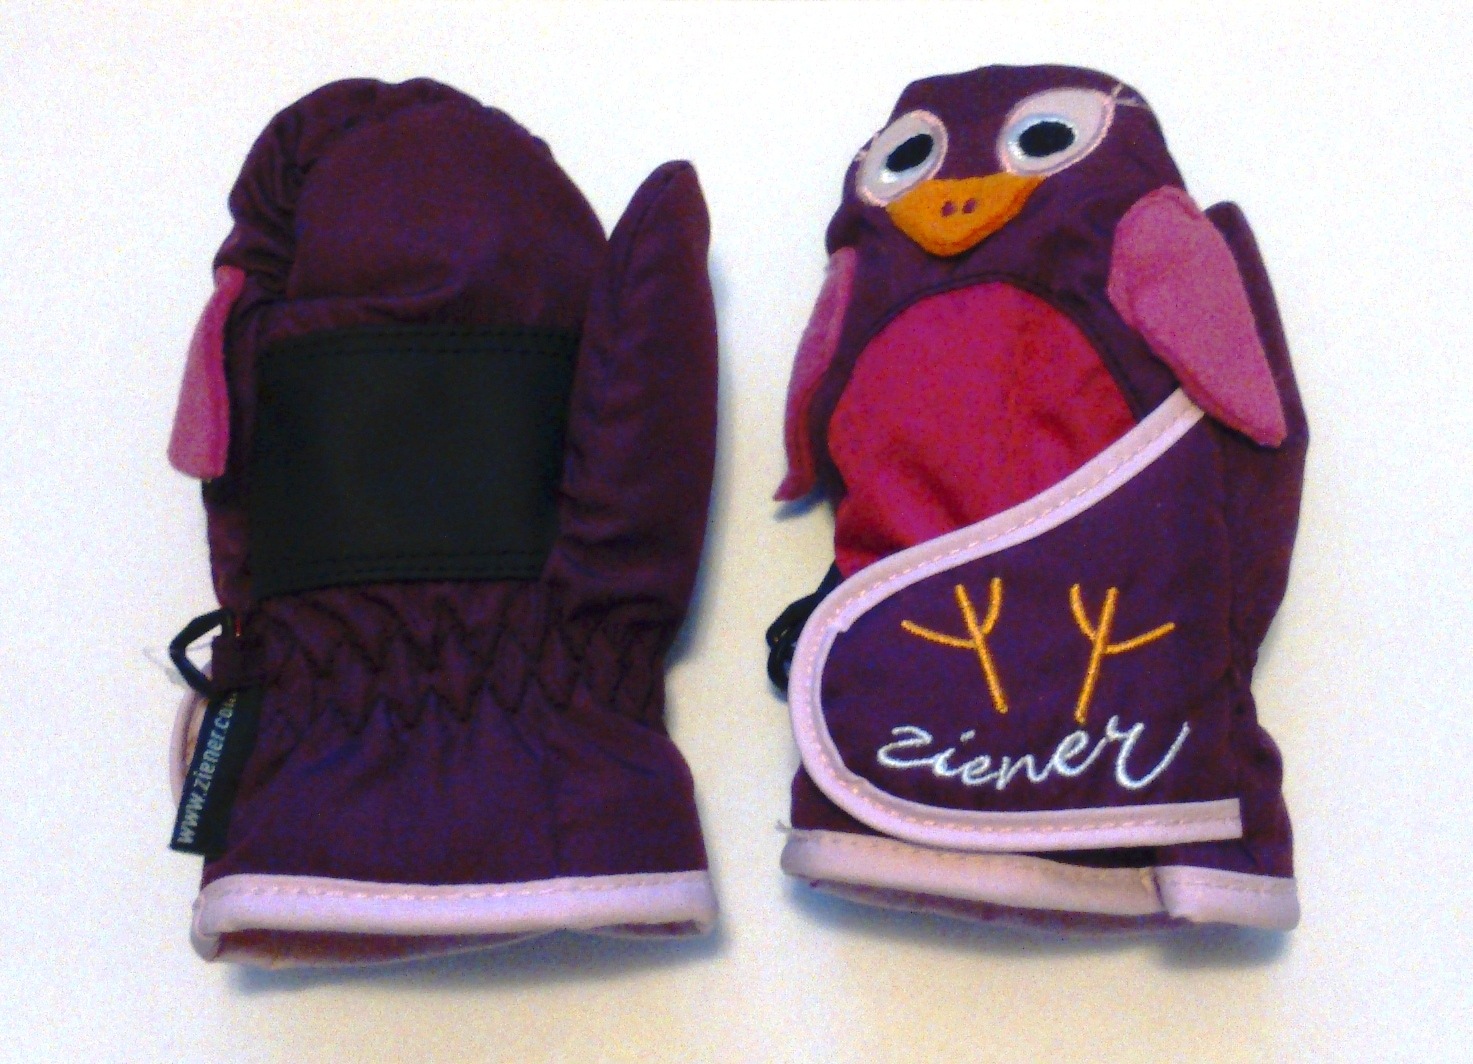 ZIENER Lanimal minis gloves, purple